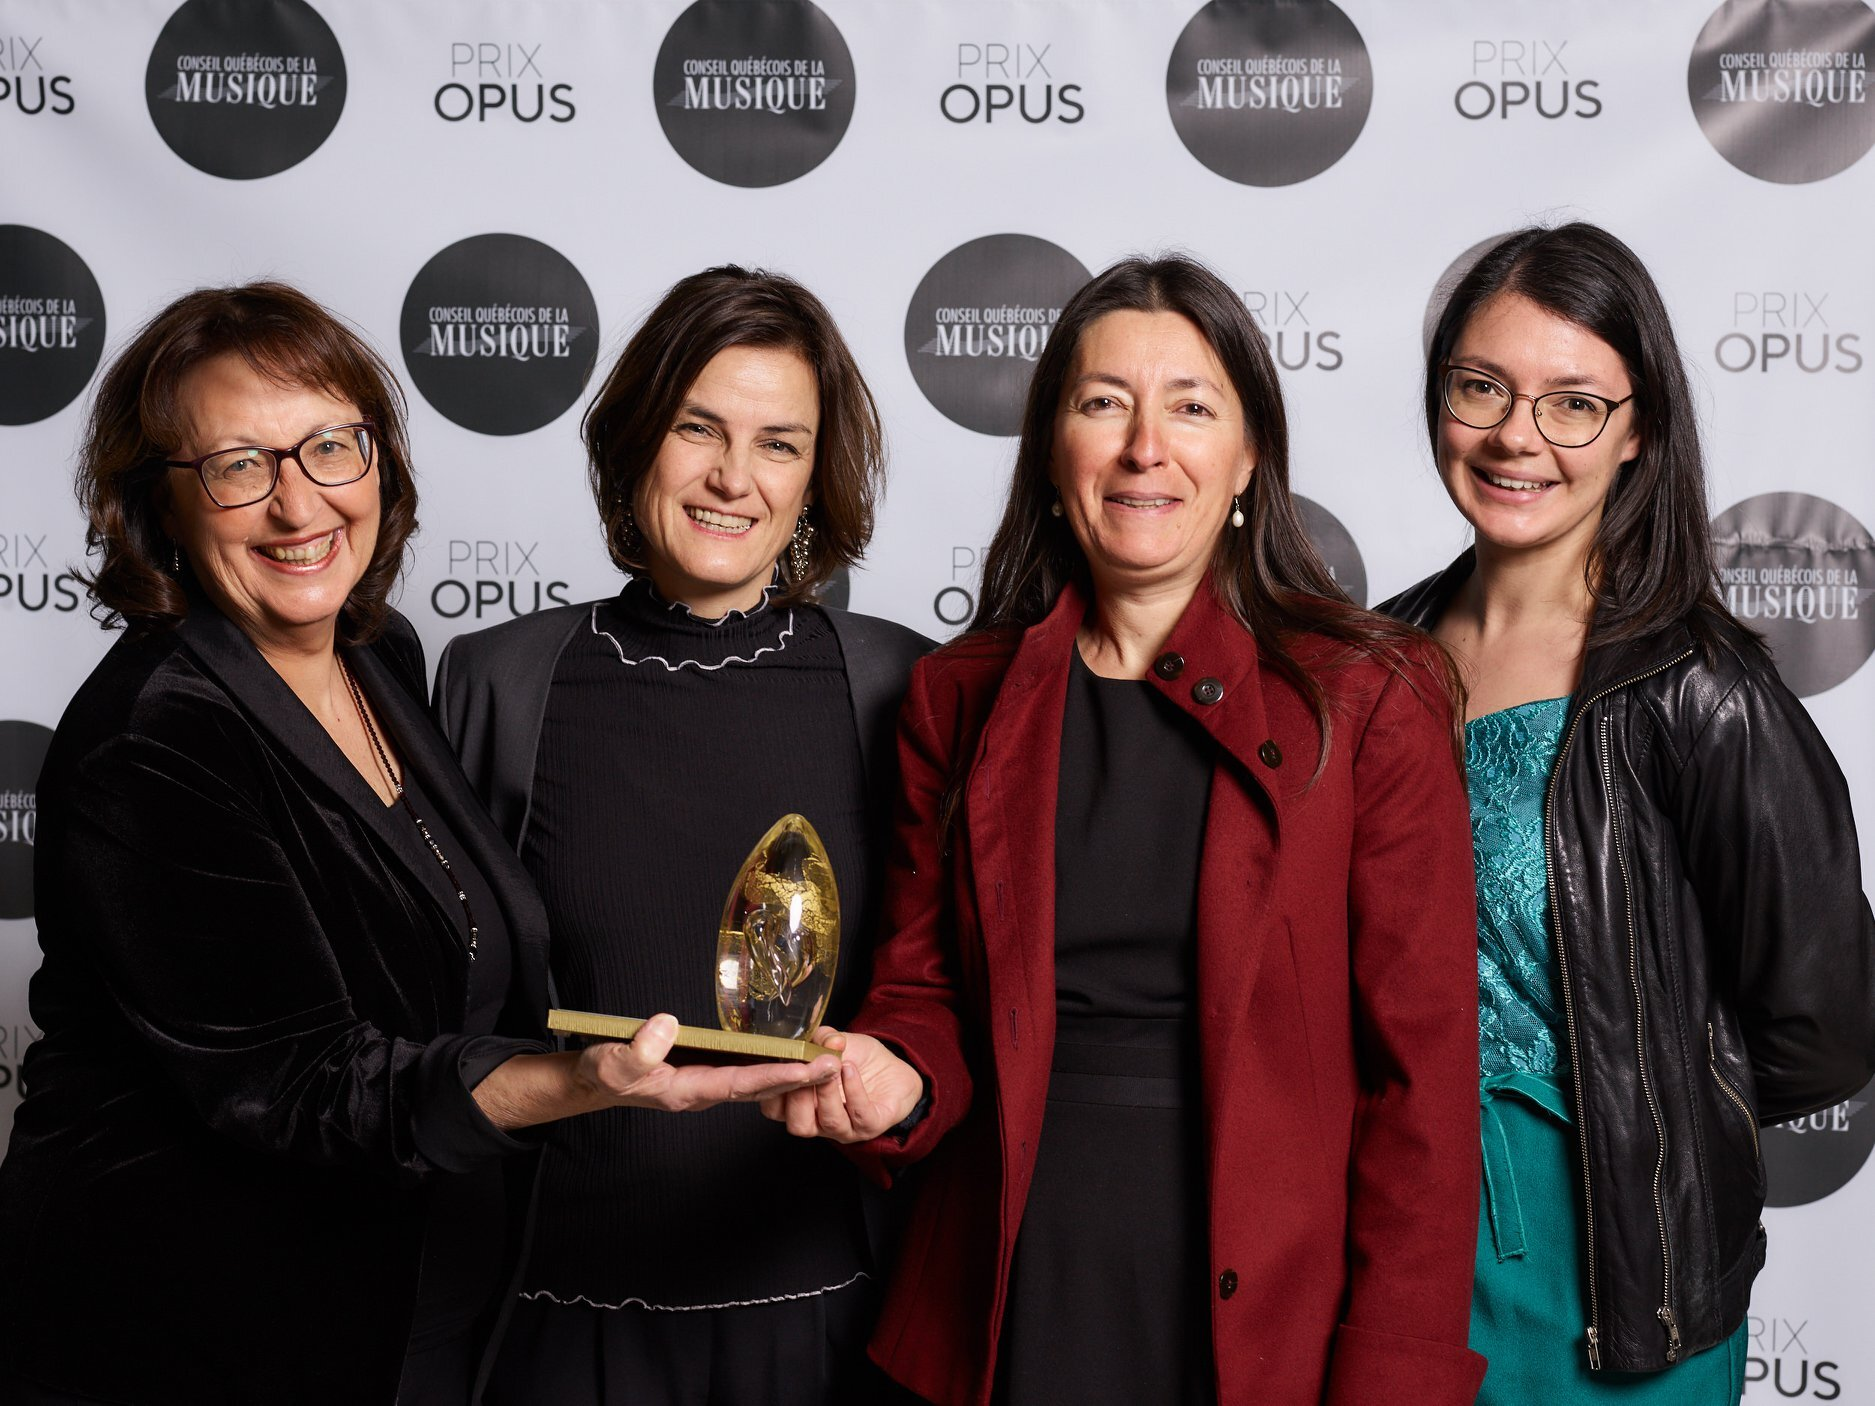 Photo of the Vivier team at the ceremony for the Opus prizes